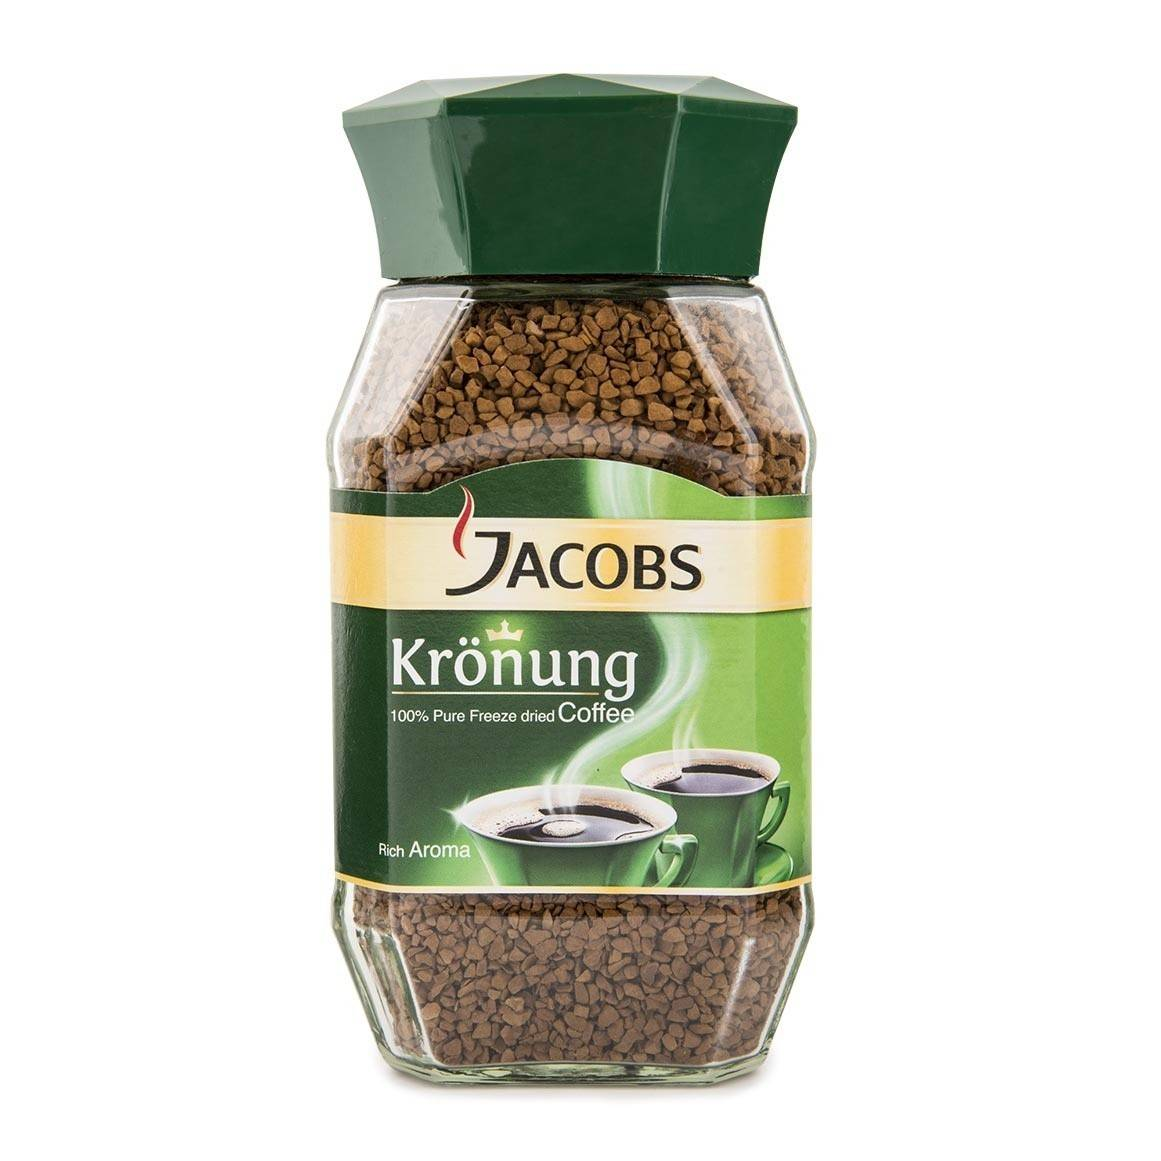 Jacobs Kronung Coffee / Ground Coffee